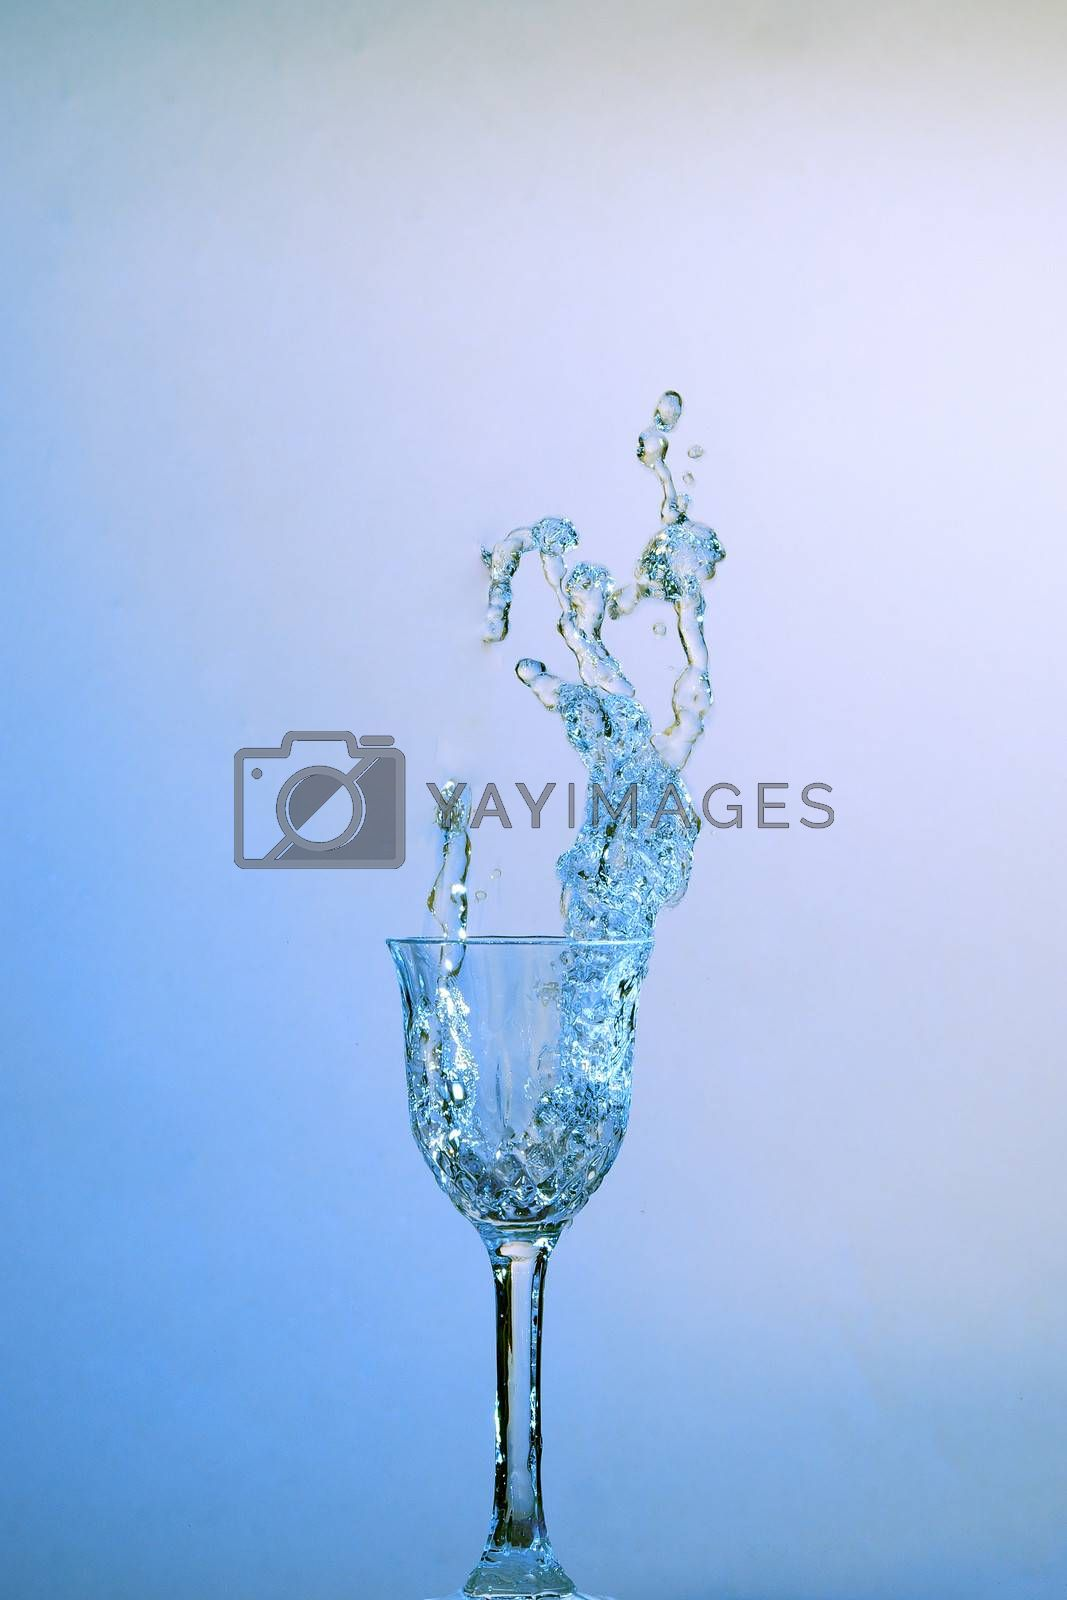 splashing in clear blue water glass with blue background